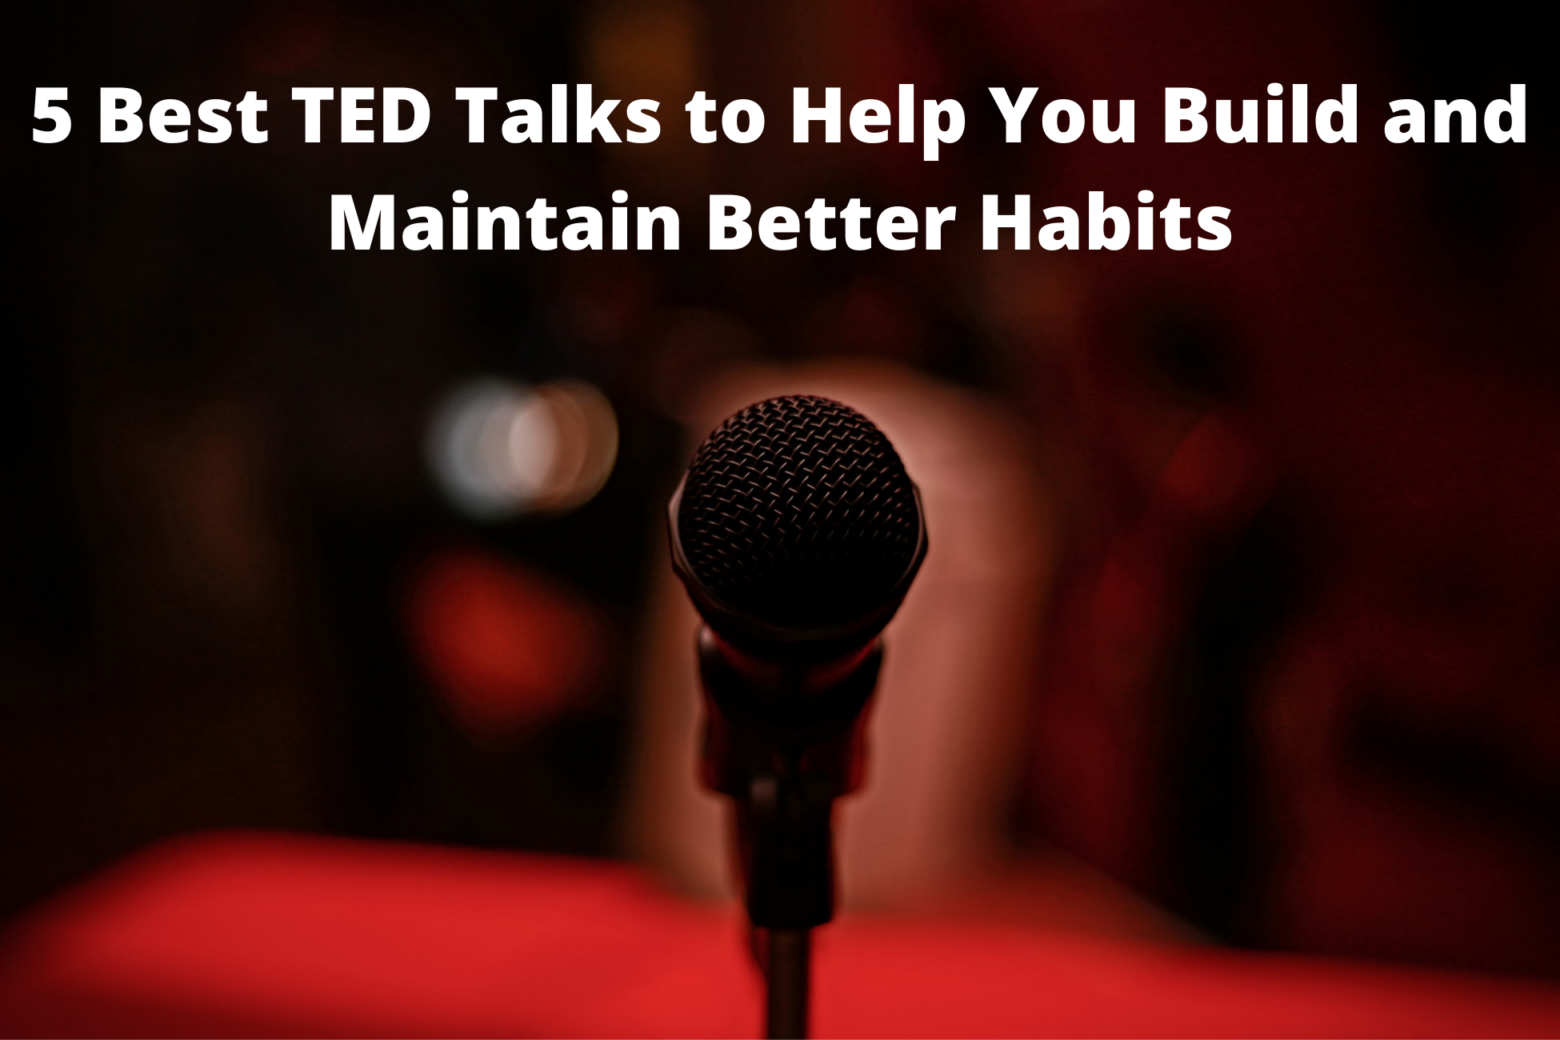 5 Best TED Talks to Help You Build and Maintain BetterHabits